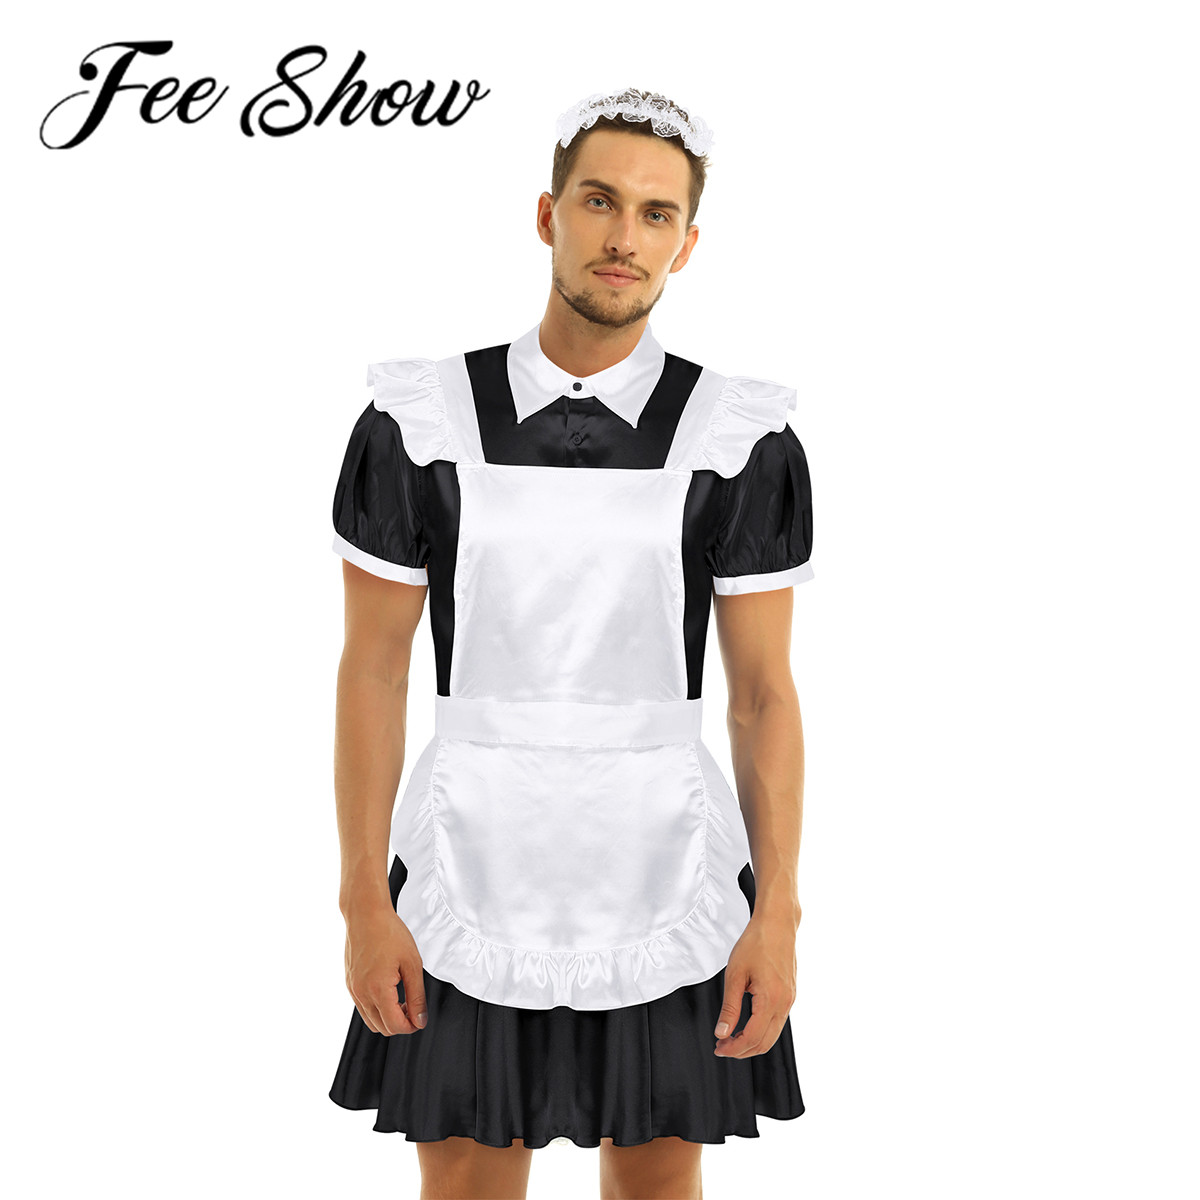 Men <font><b>Sissy</b></font> Shemale Clothes Maid Cosplay Costume Male <font><b>Gay</b></font> Crossdresser Halloween Role-playing Games Man <font><b>Lingerie</b></font> For Crossdressing image